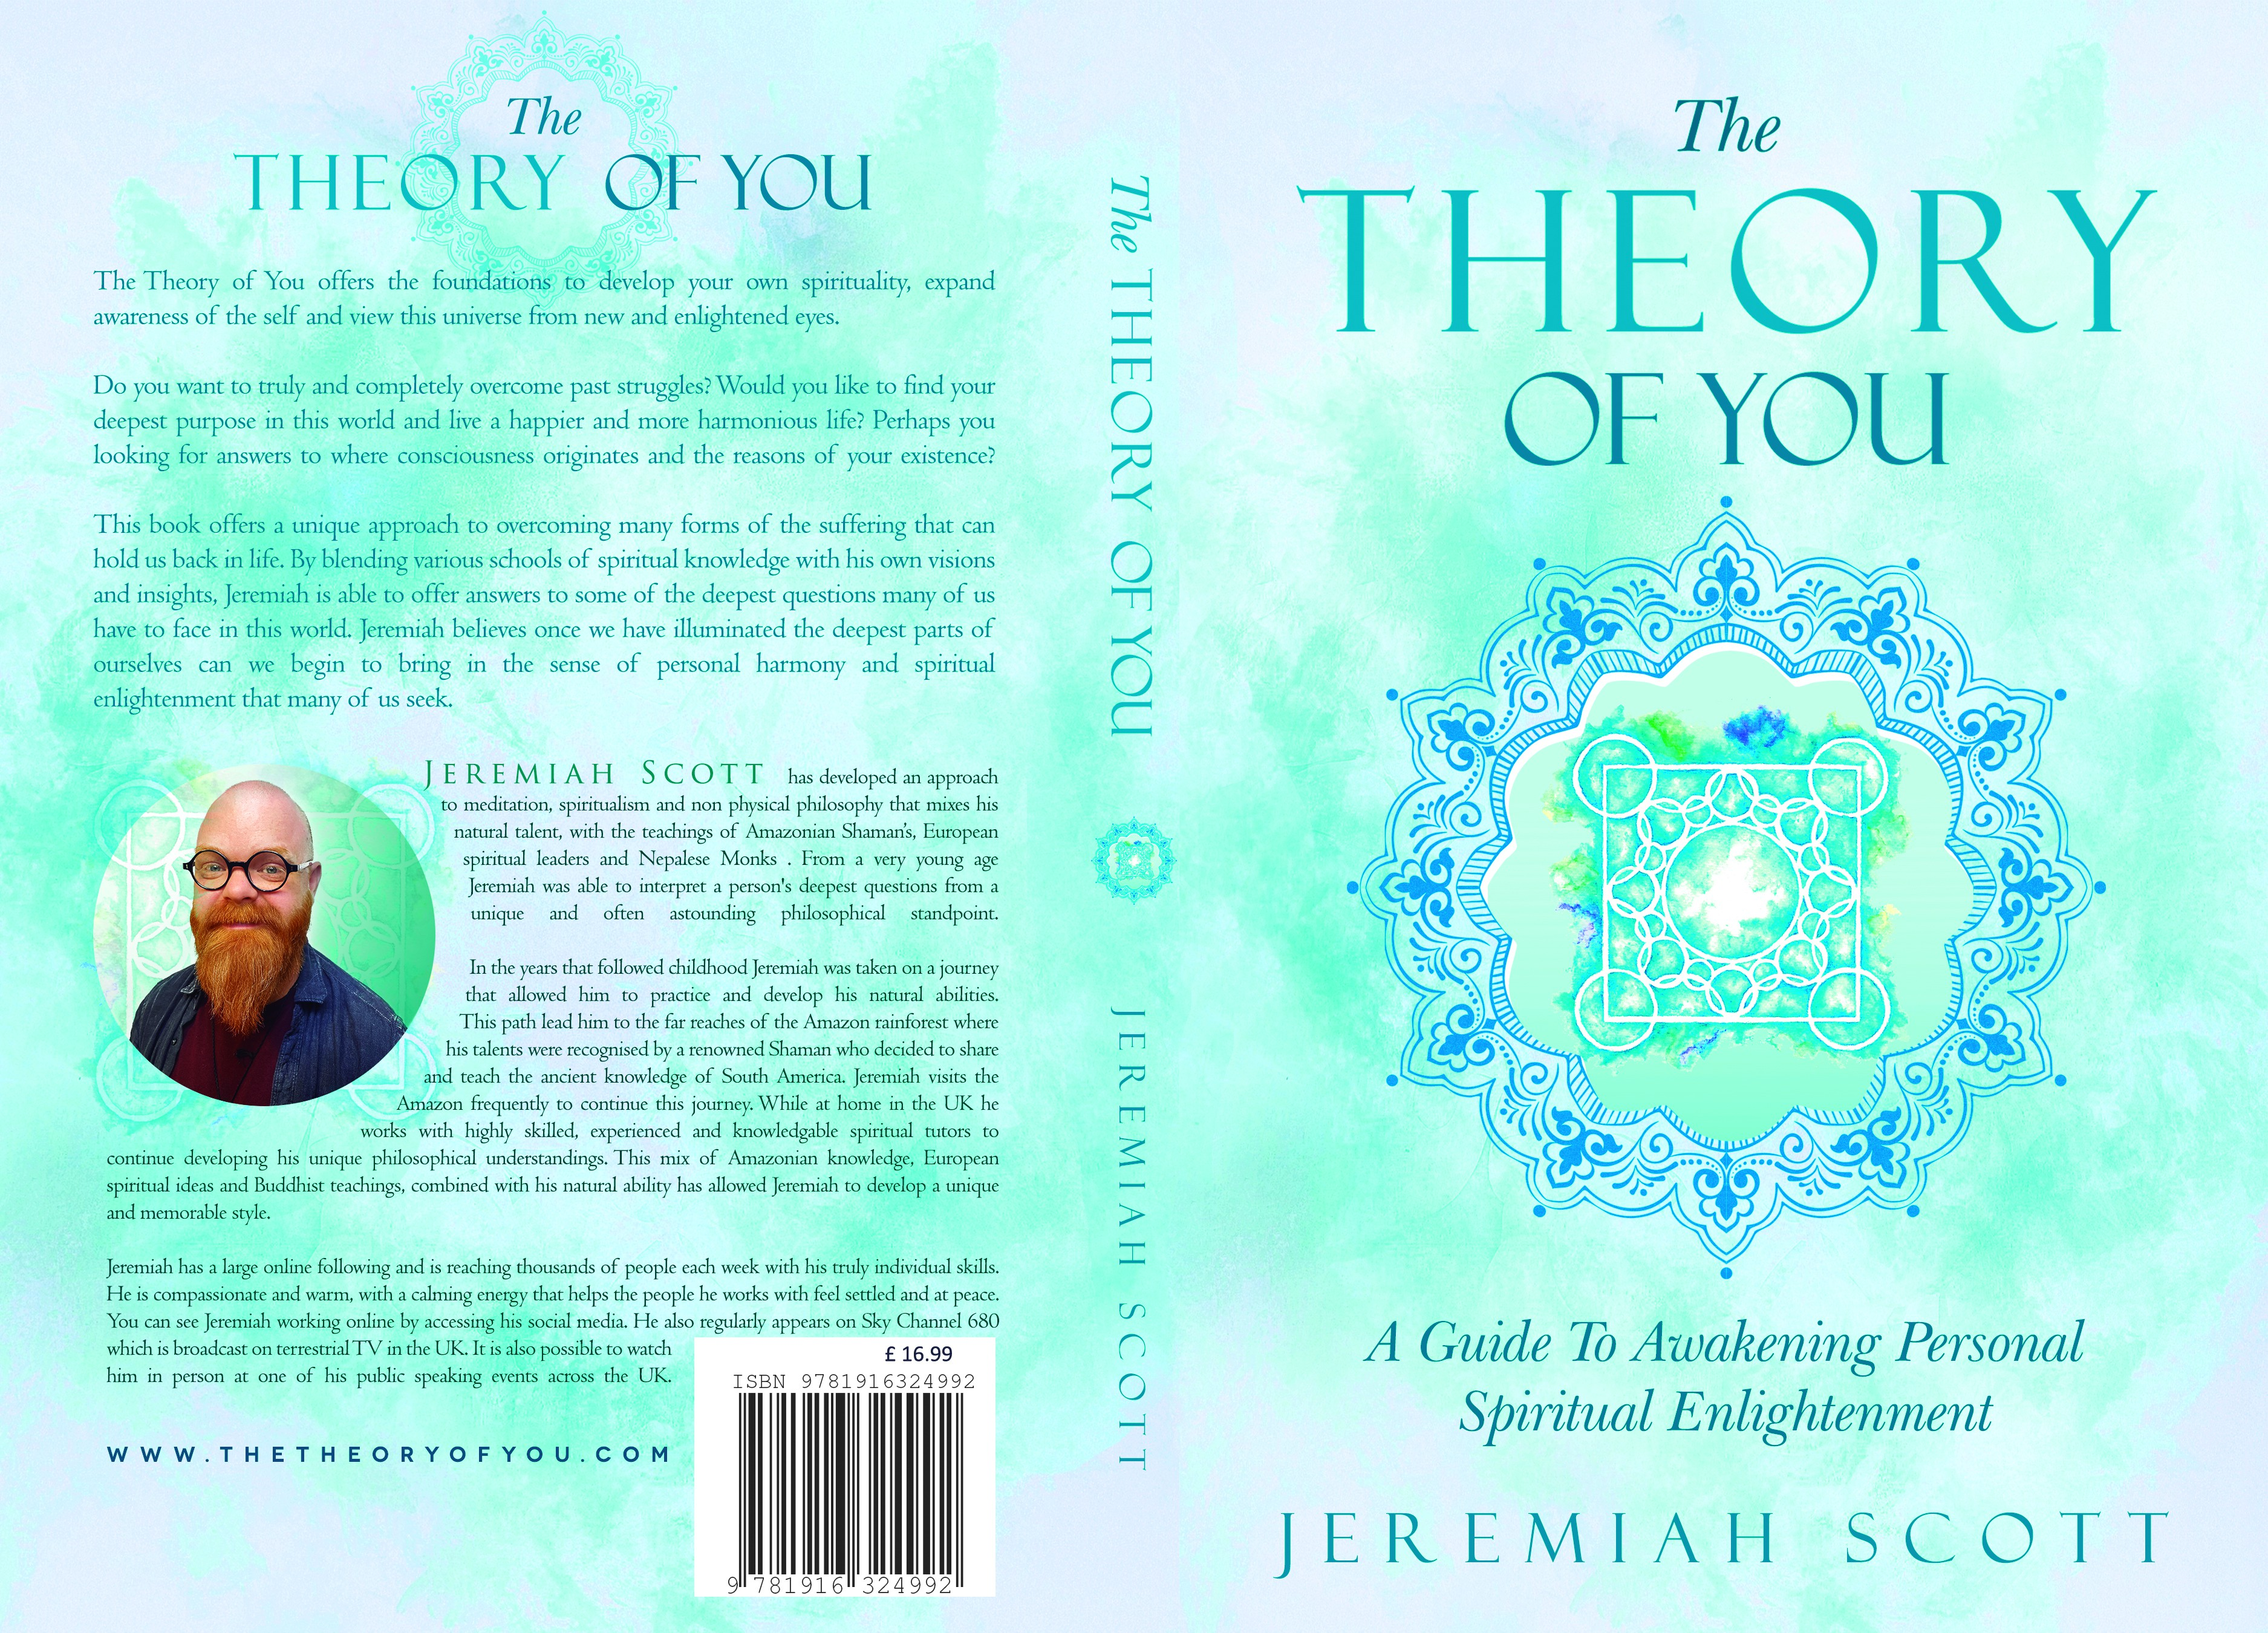 Eye catching NEW cover needed for spiritual enlightenment book